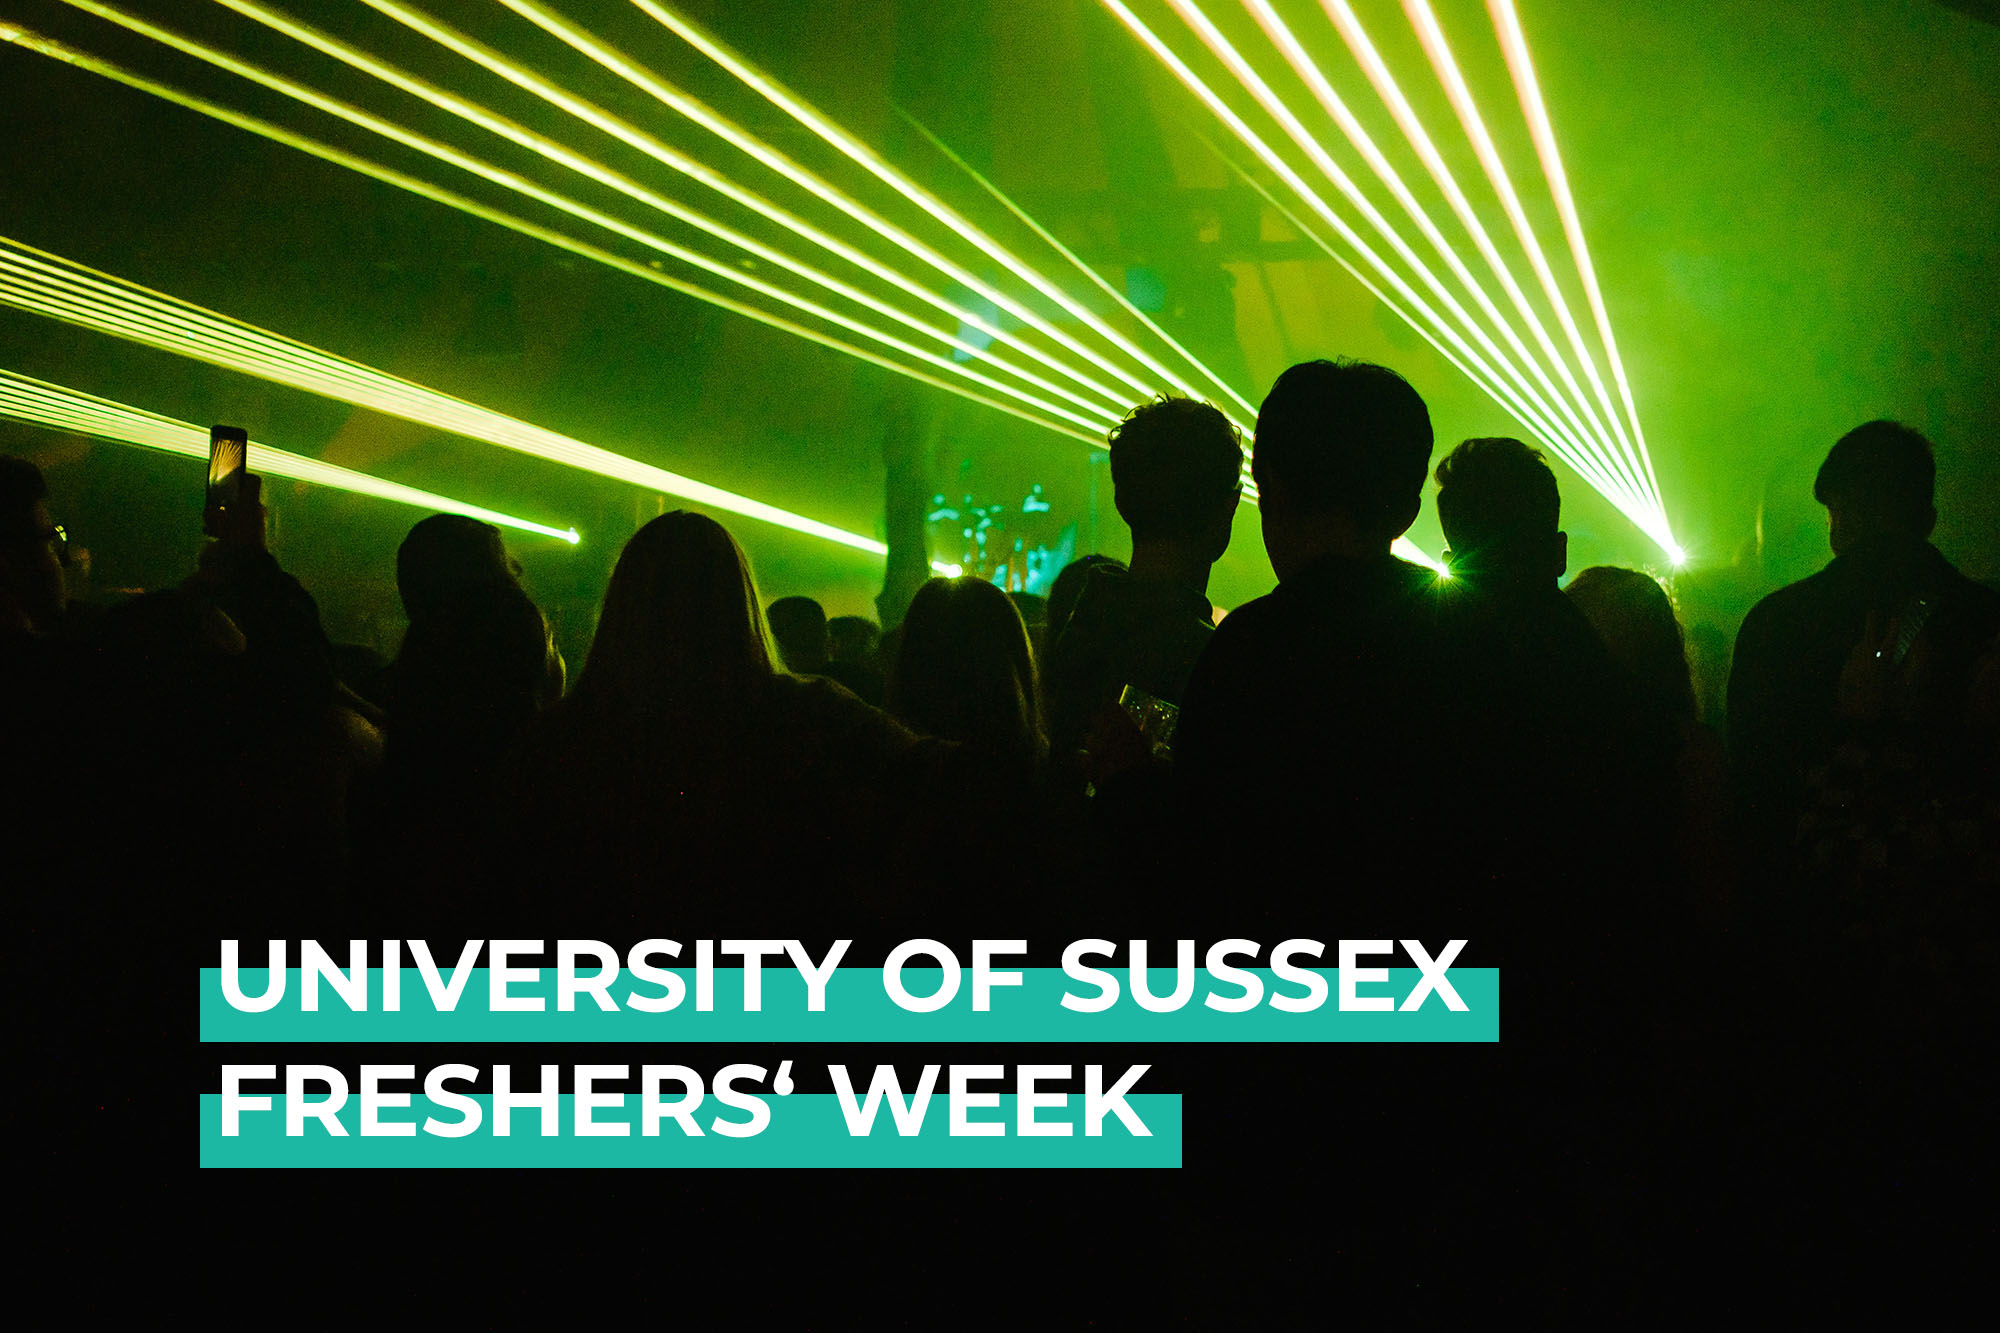 university of sussex freshers' week commercial photography blogpost